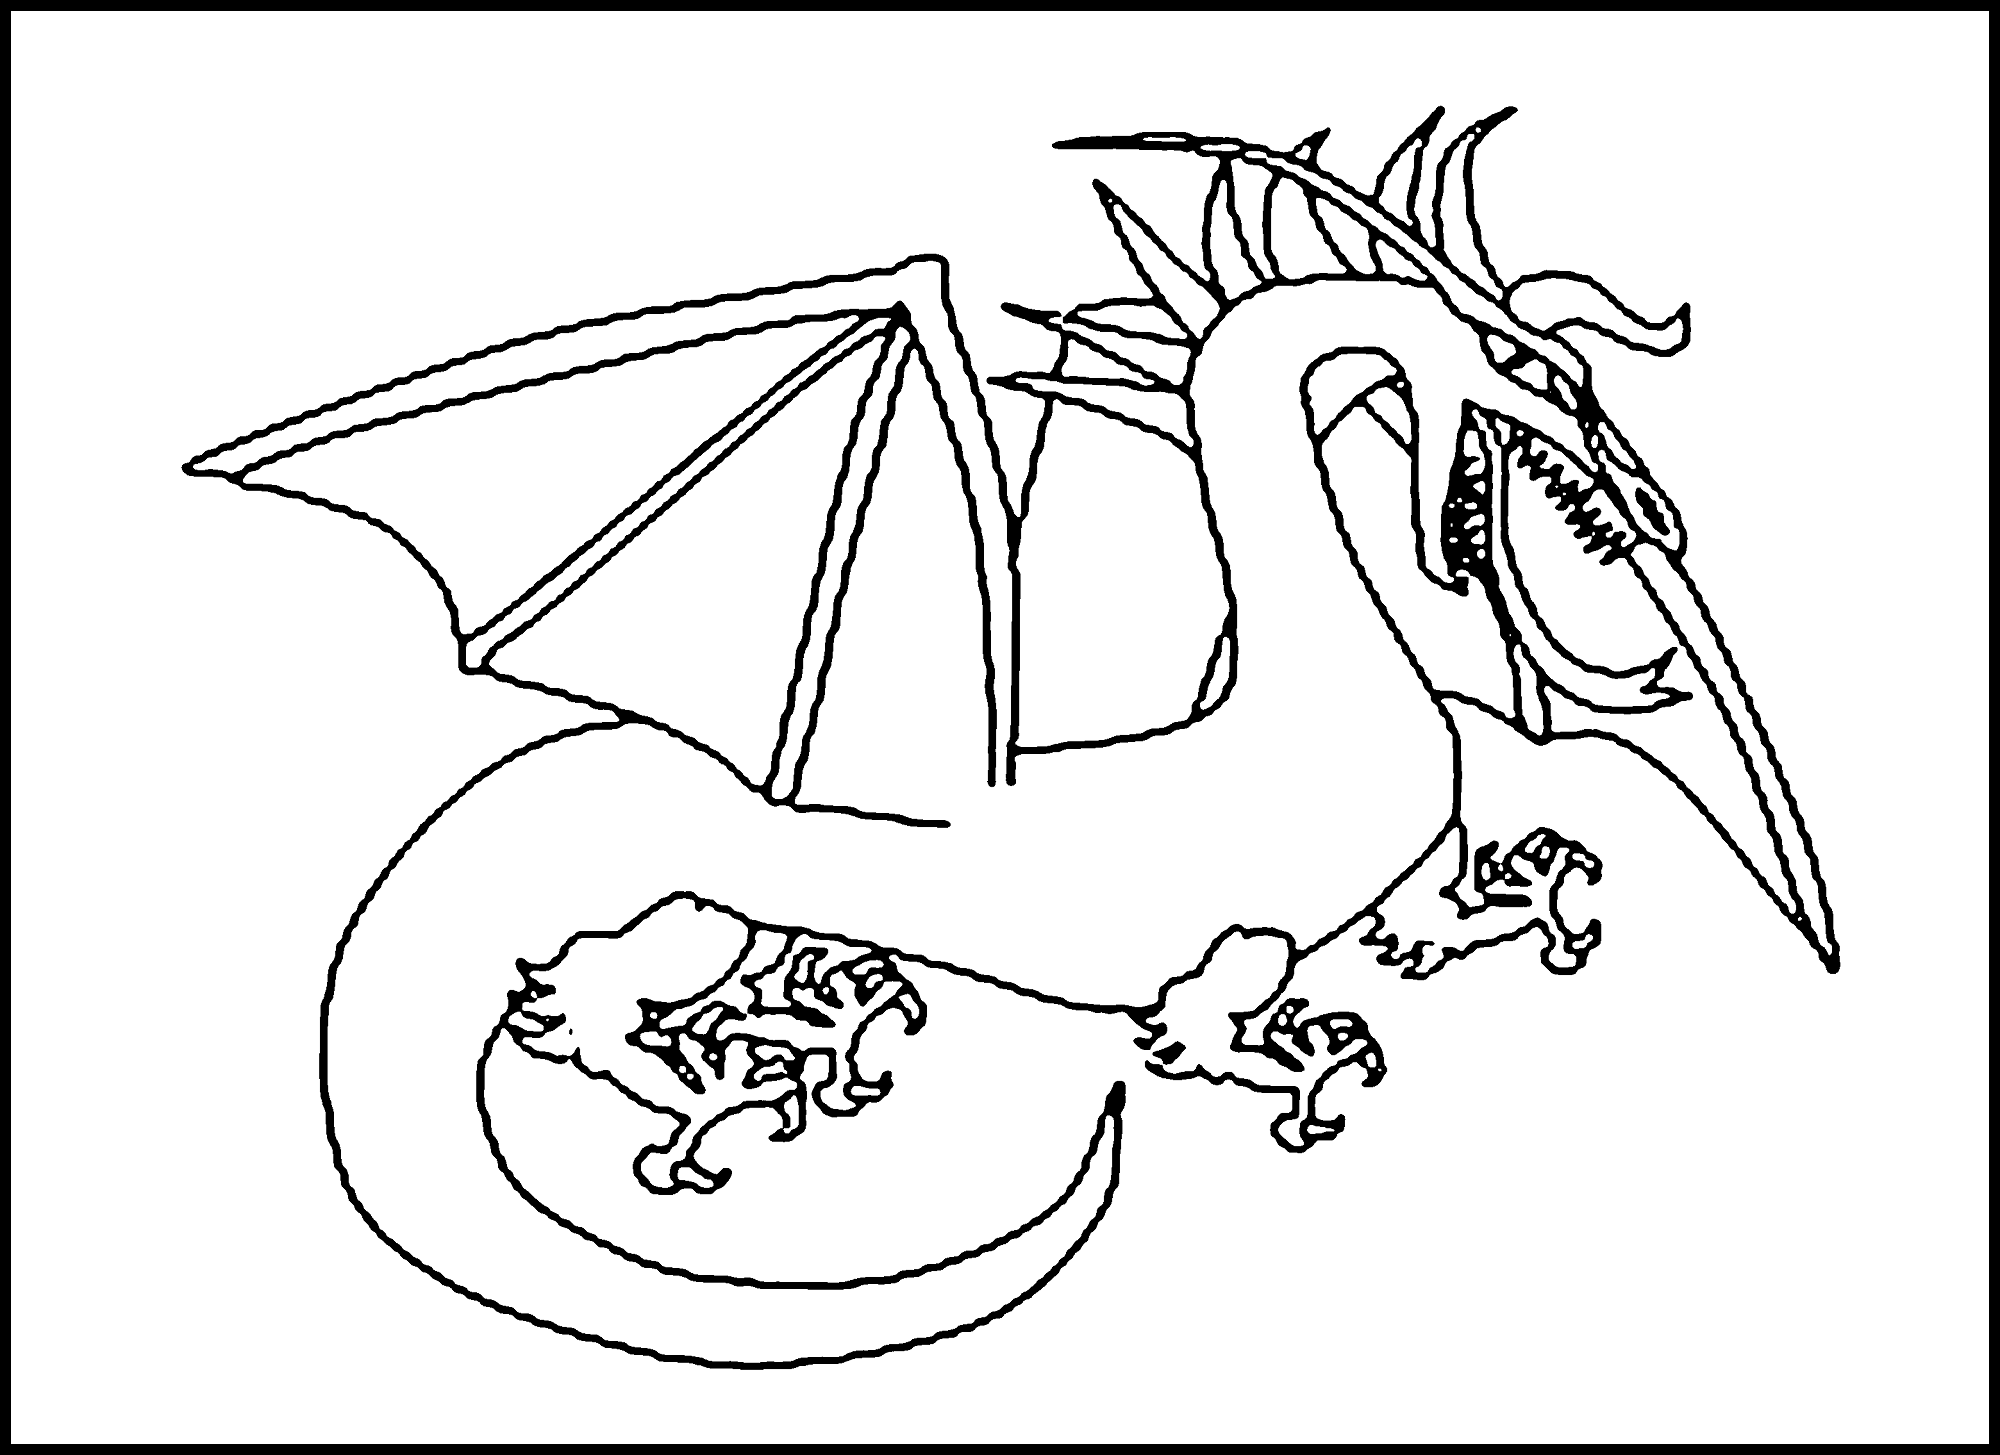 Printable coloring pages and dragons ~ Dragon Coloring Pages Printable | Activity Shelter